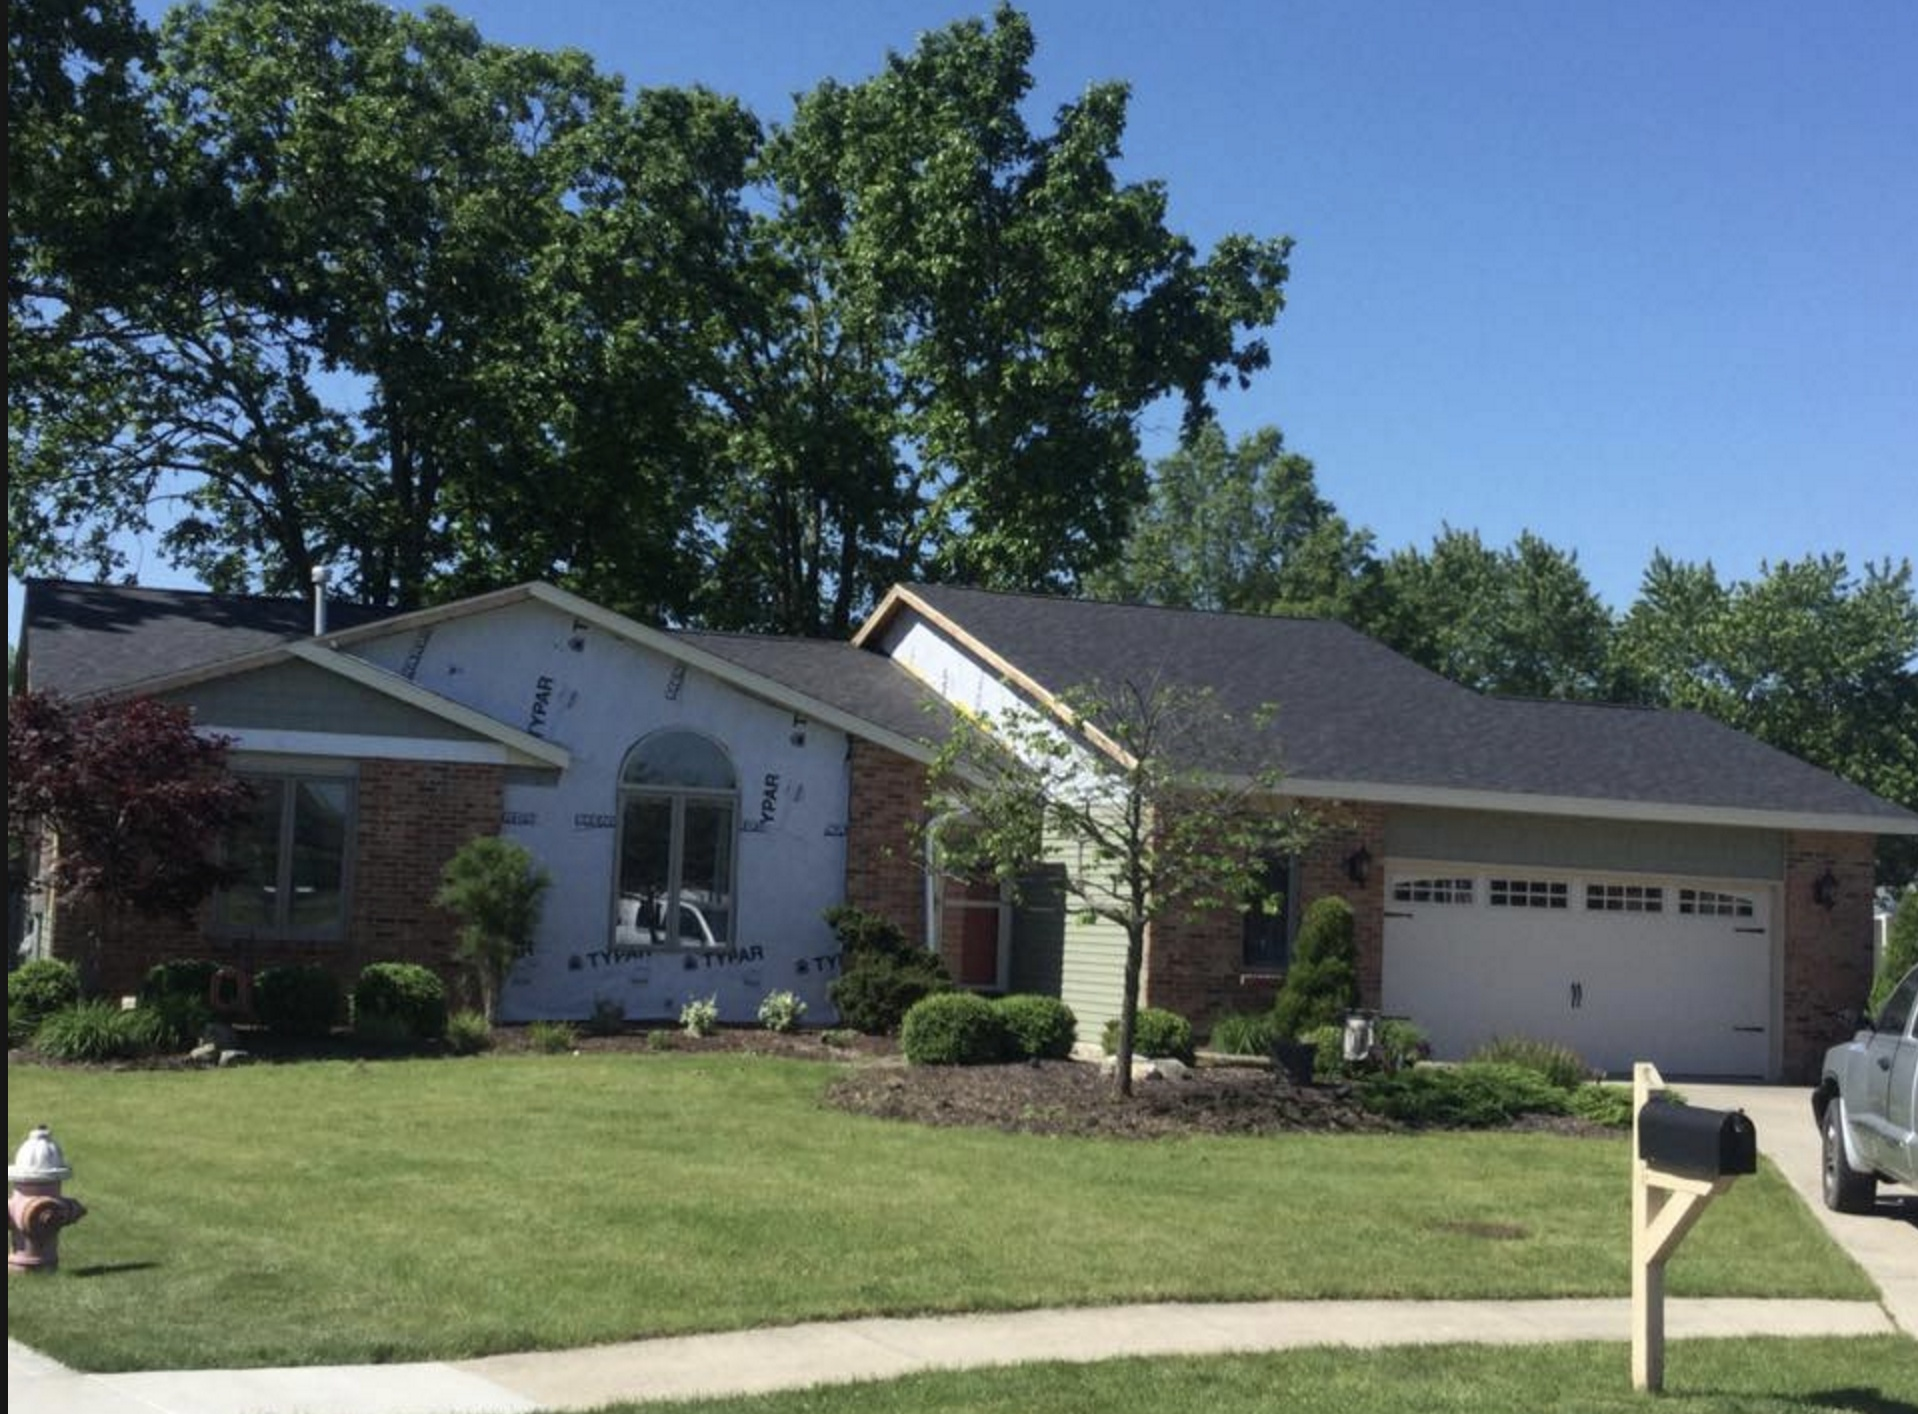 6/1/2017 Defiance, Ohio completed in Black Shingles